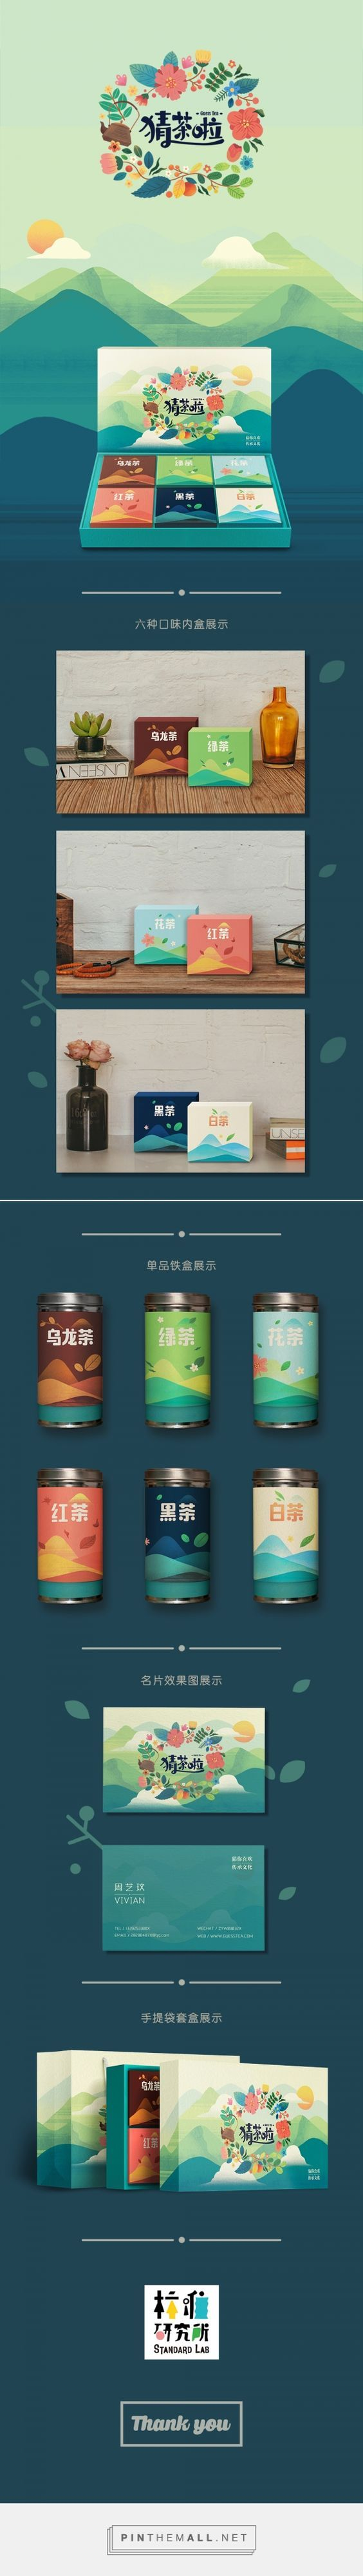 Branding, illustration and packaging for Guess tea packaging on Behance curated by Packaging Diva PD. Pretty simple packaging designs.: